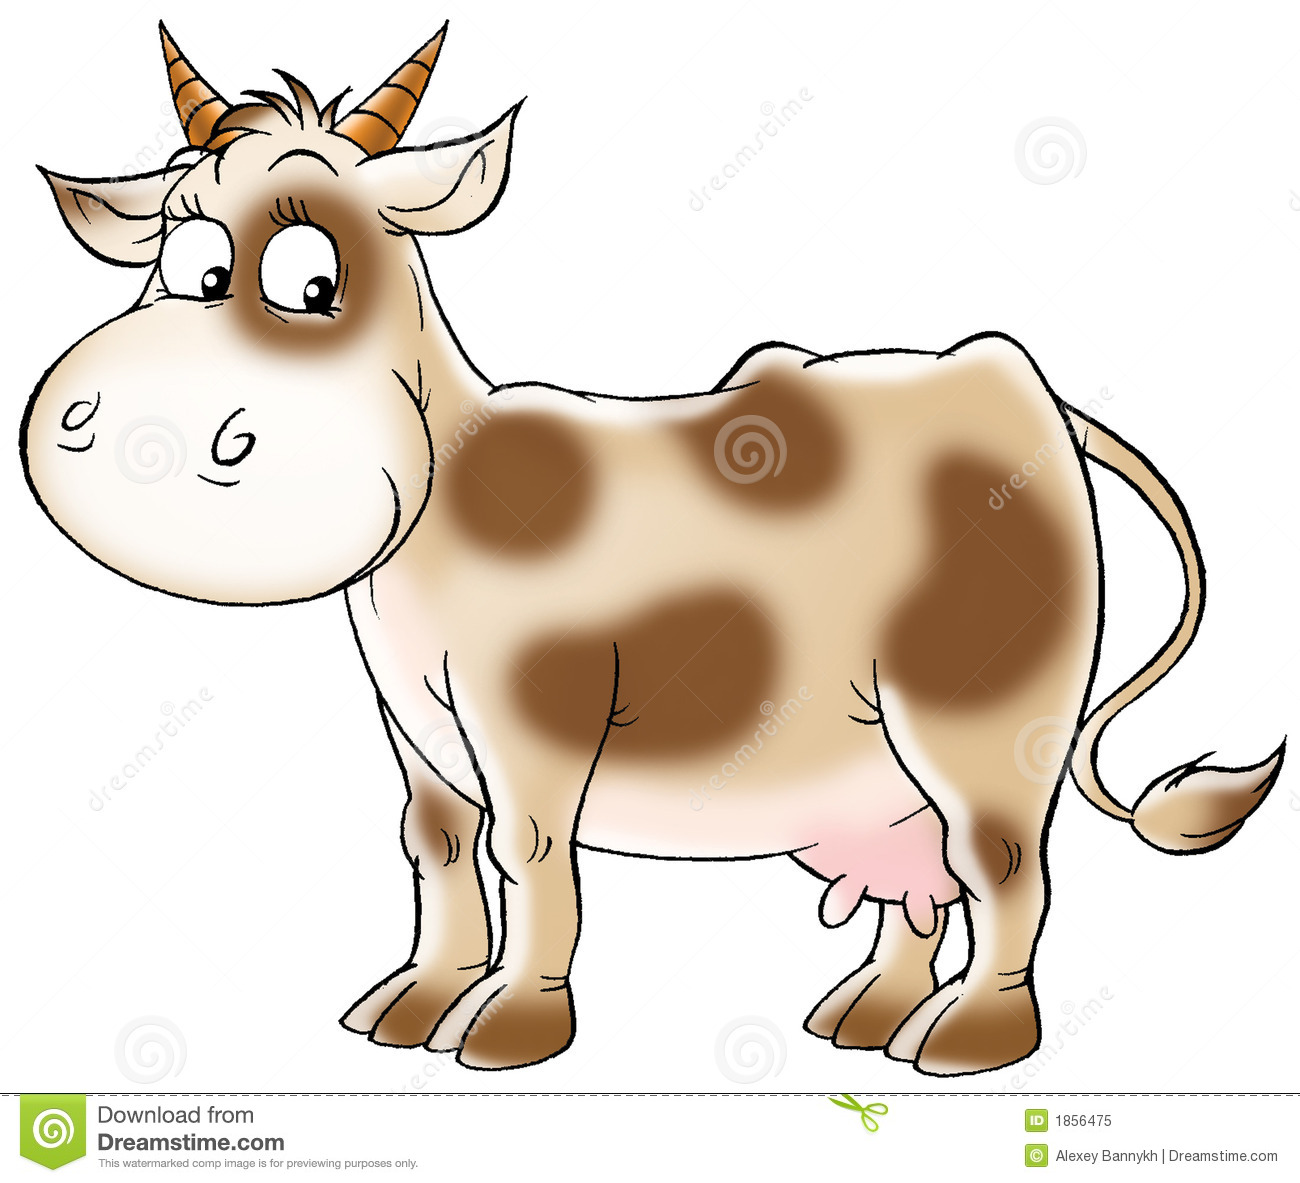 Add New Clip Art Allows You Can Use This Animated Cow Clip Art.